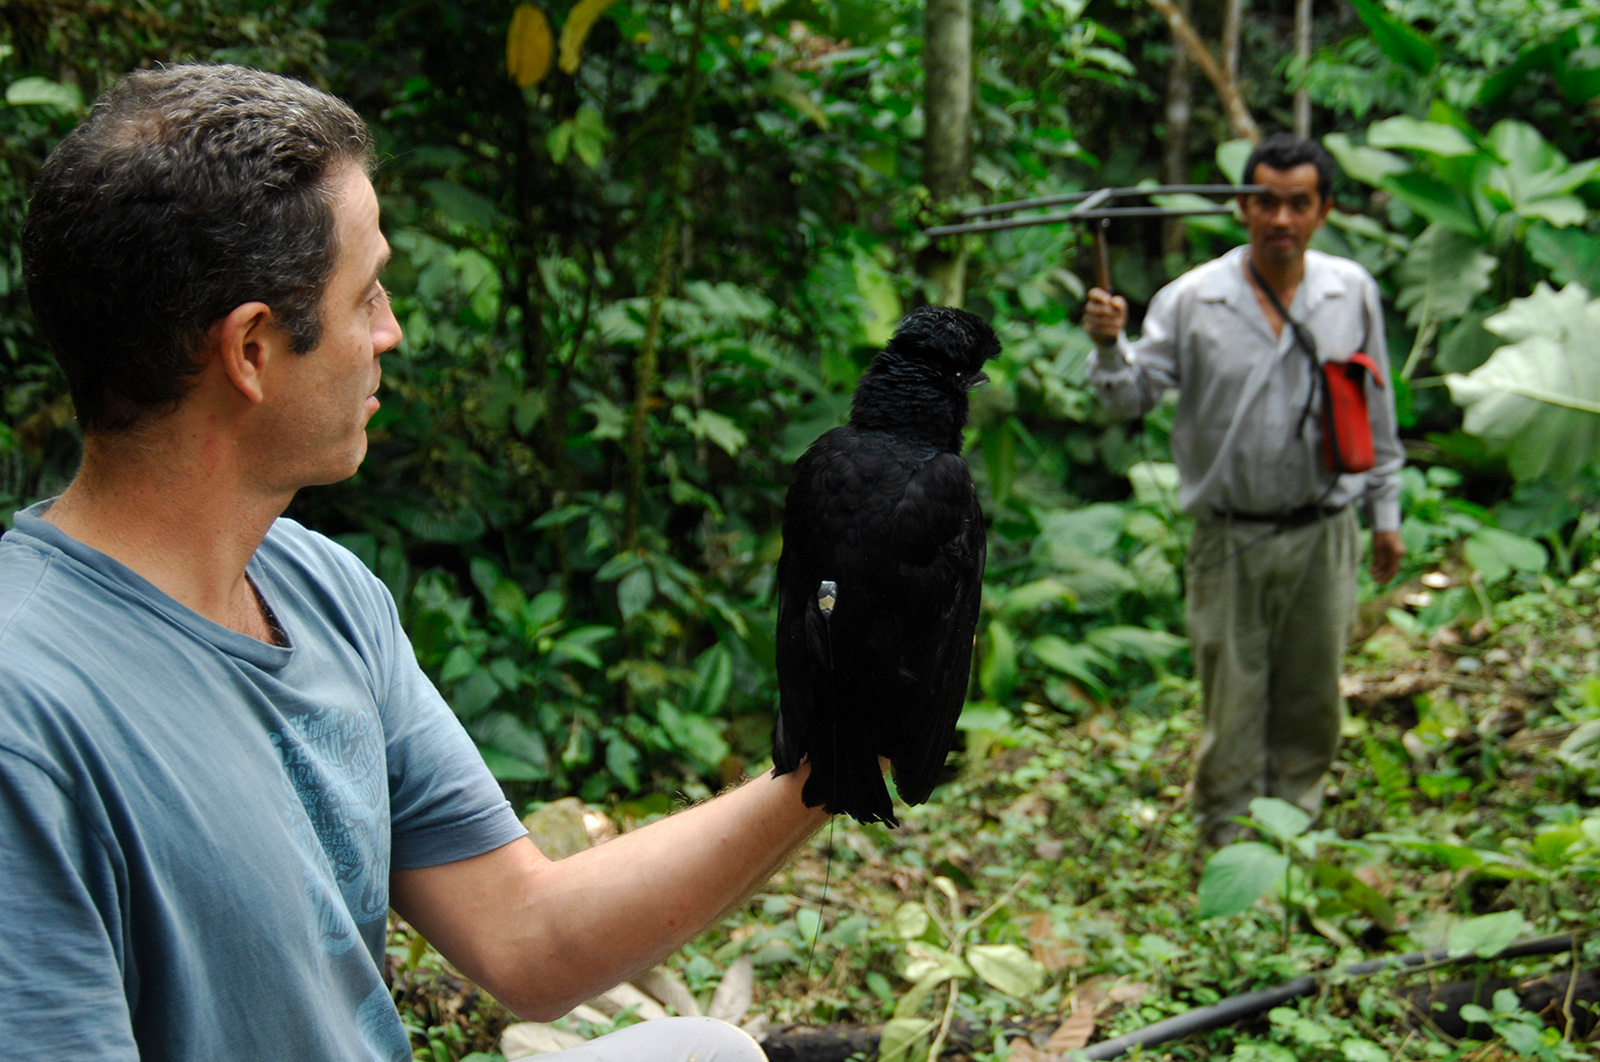 One team member holds an Umbrellabird while another person holds a perch for it to land on